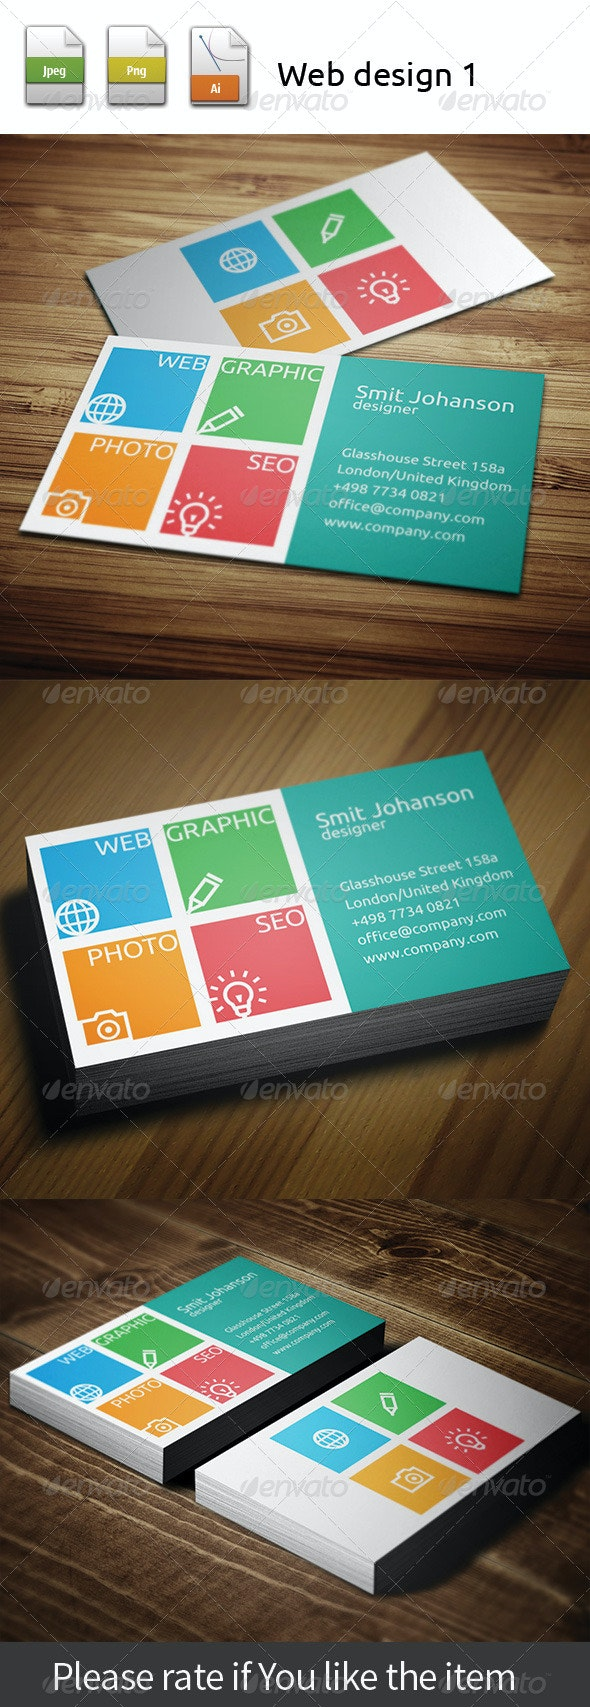 Web design 998 - Creative Business Cards